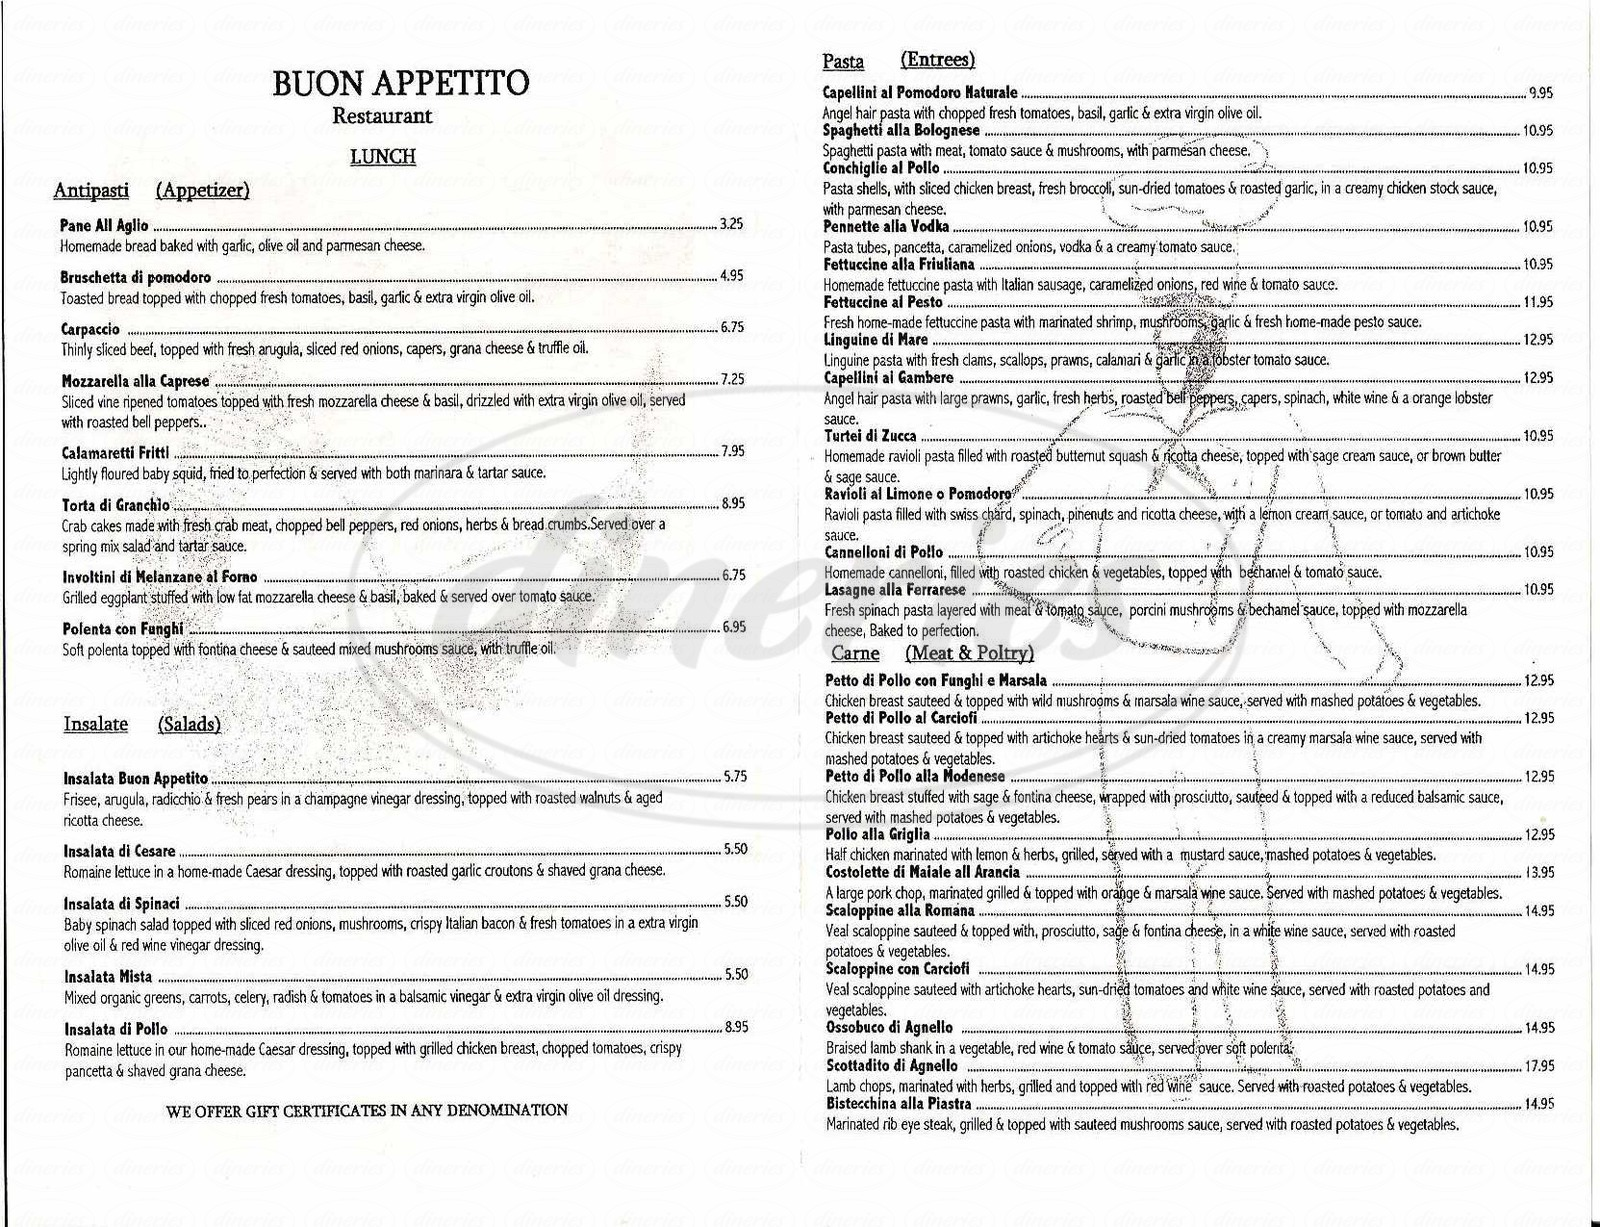 menu for Buon Appetito